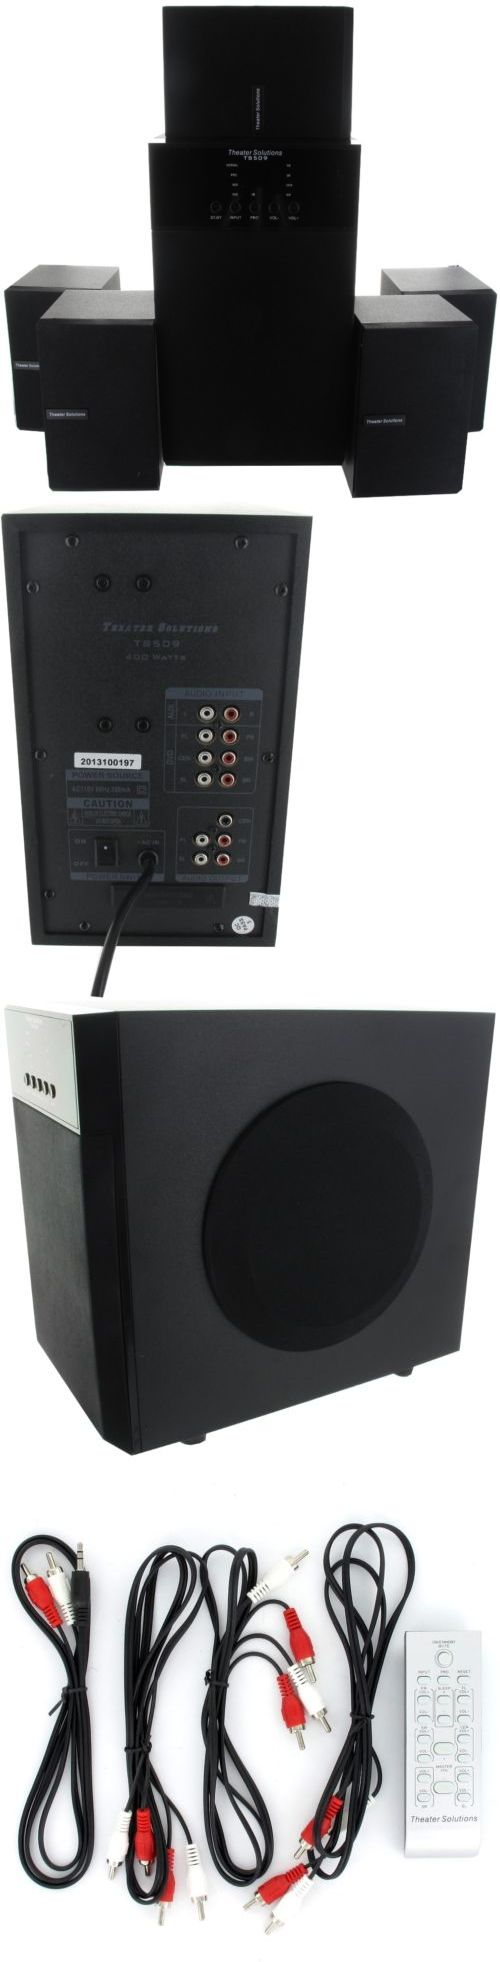 Home Theater Systems: Theater Solutions 5.1-Channel Surround Sound Home Entertainment System -> BUY IT NOW ONLY: $74.49 on eBay!